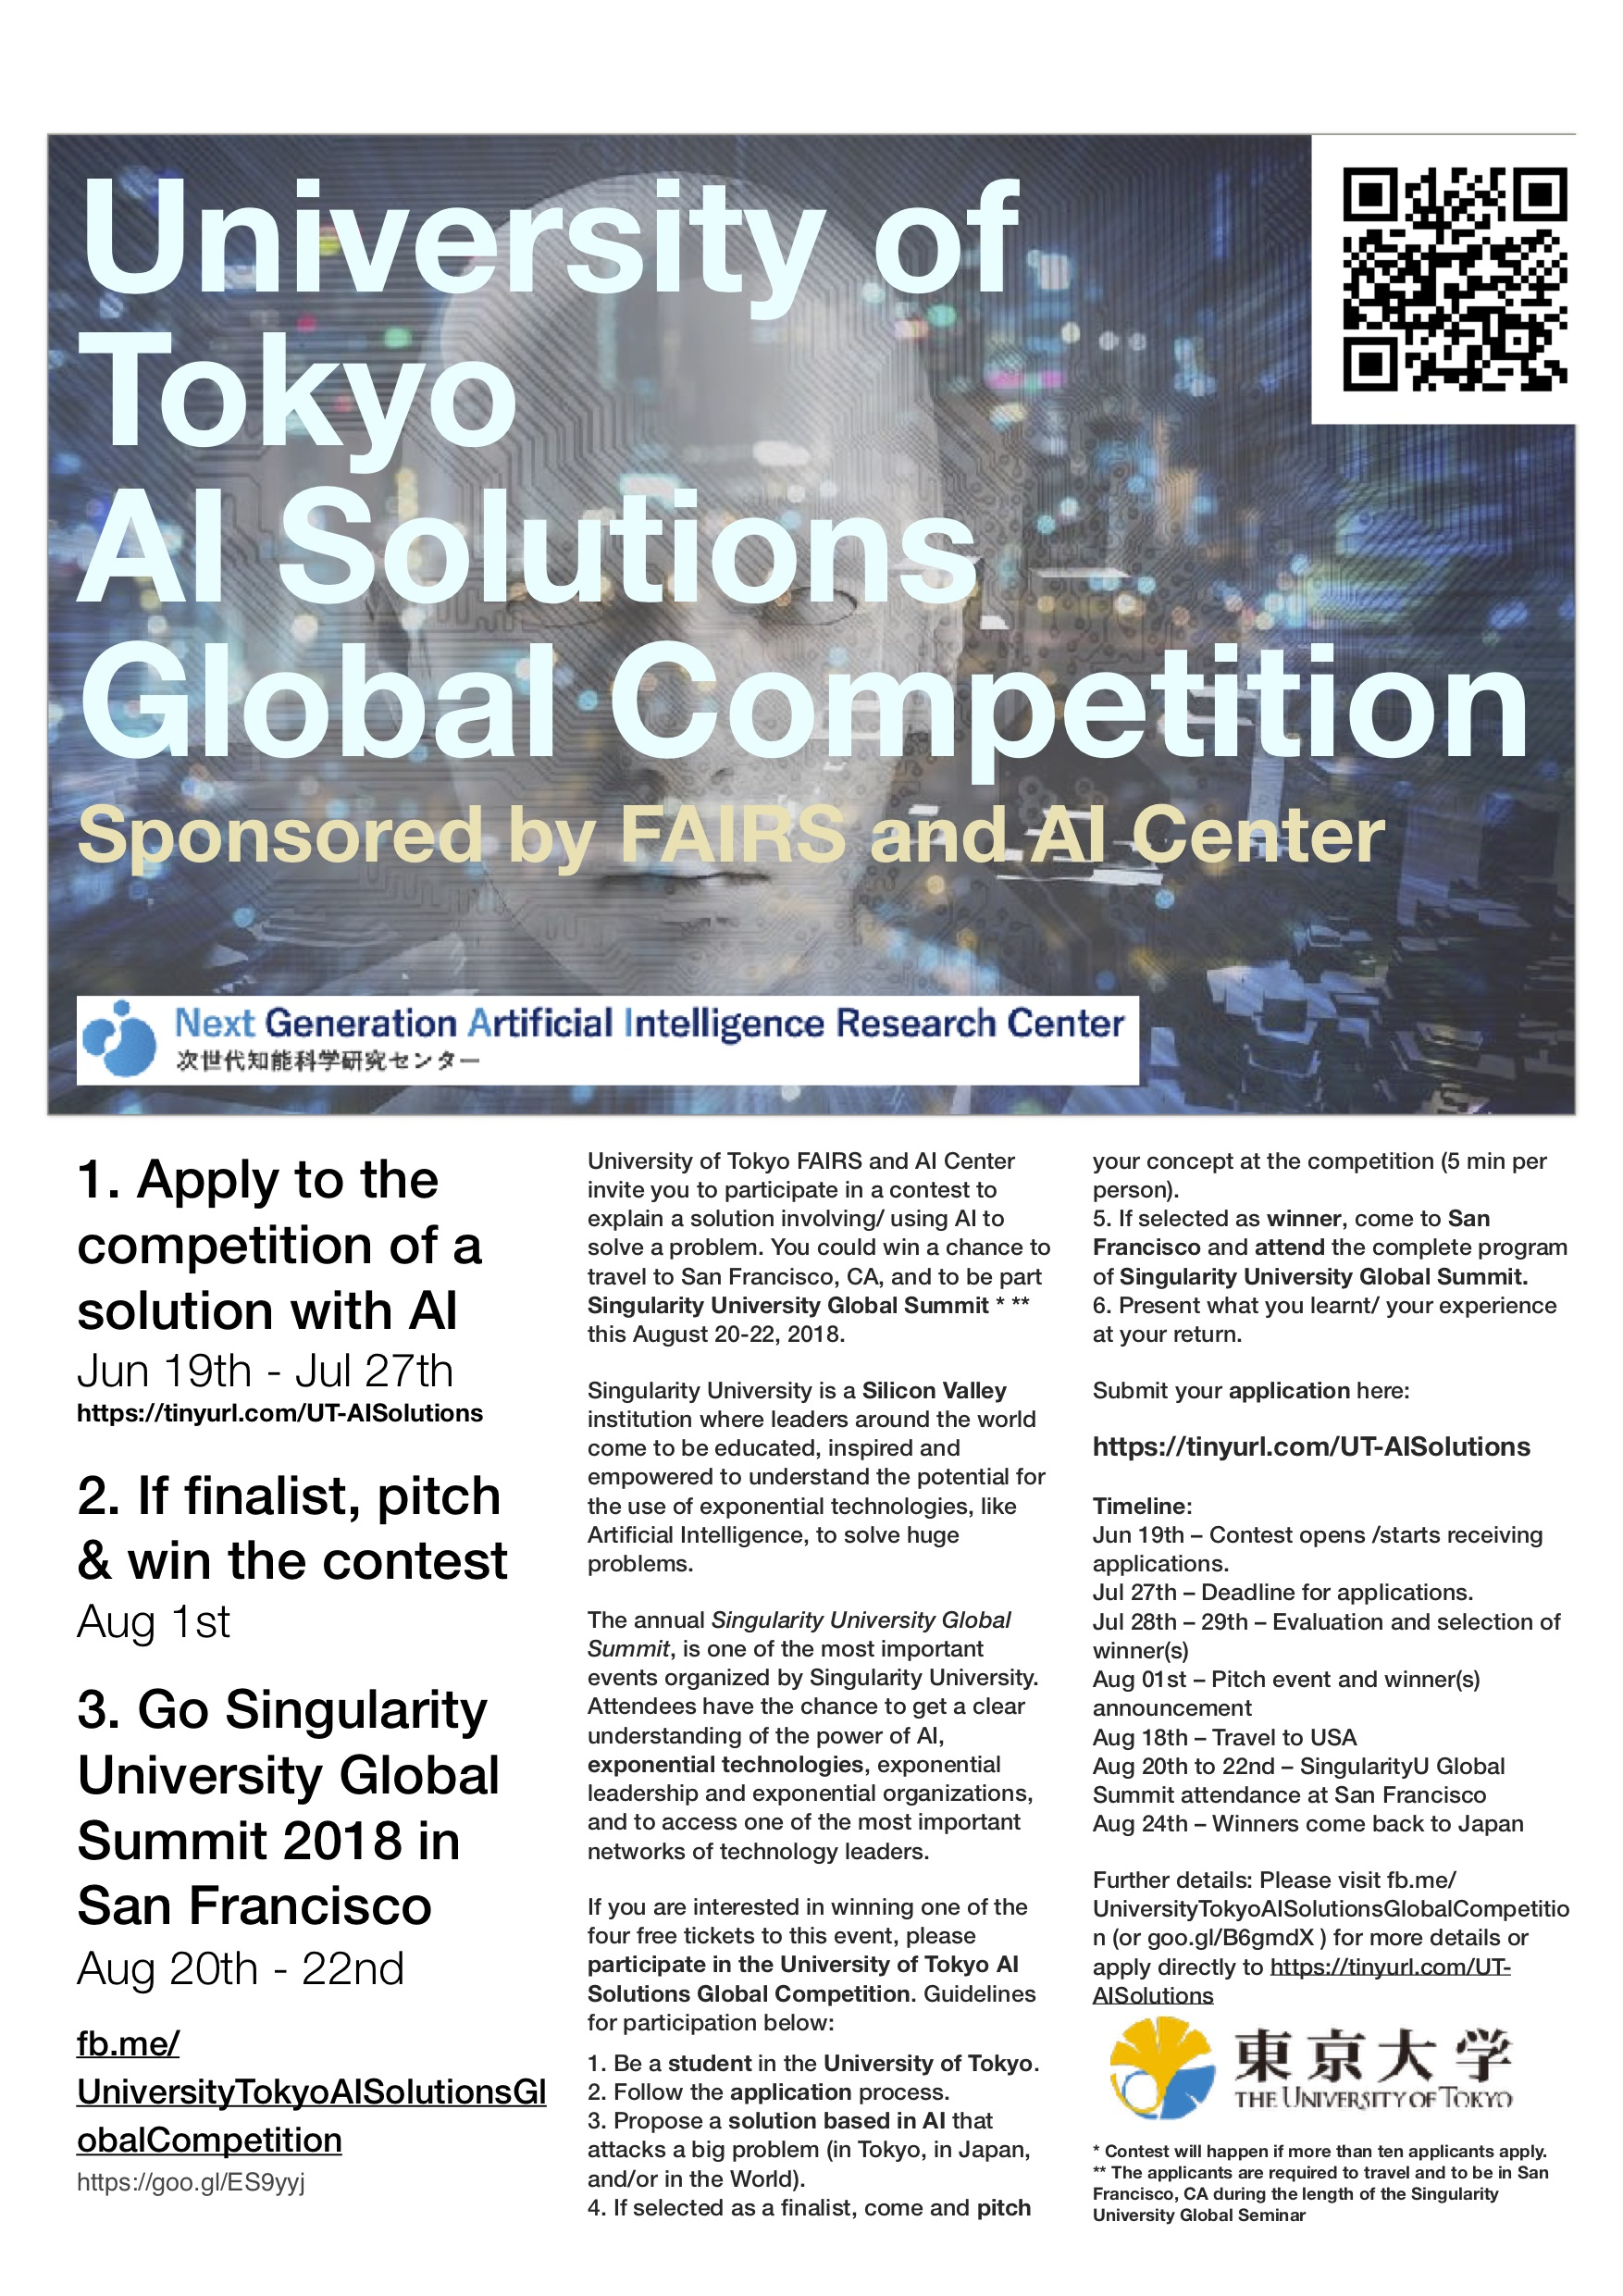 University of Tokyo AI Solutions Global Competition